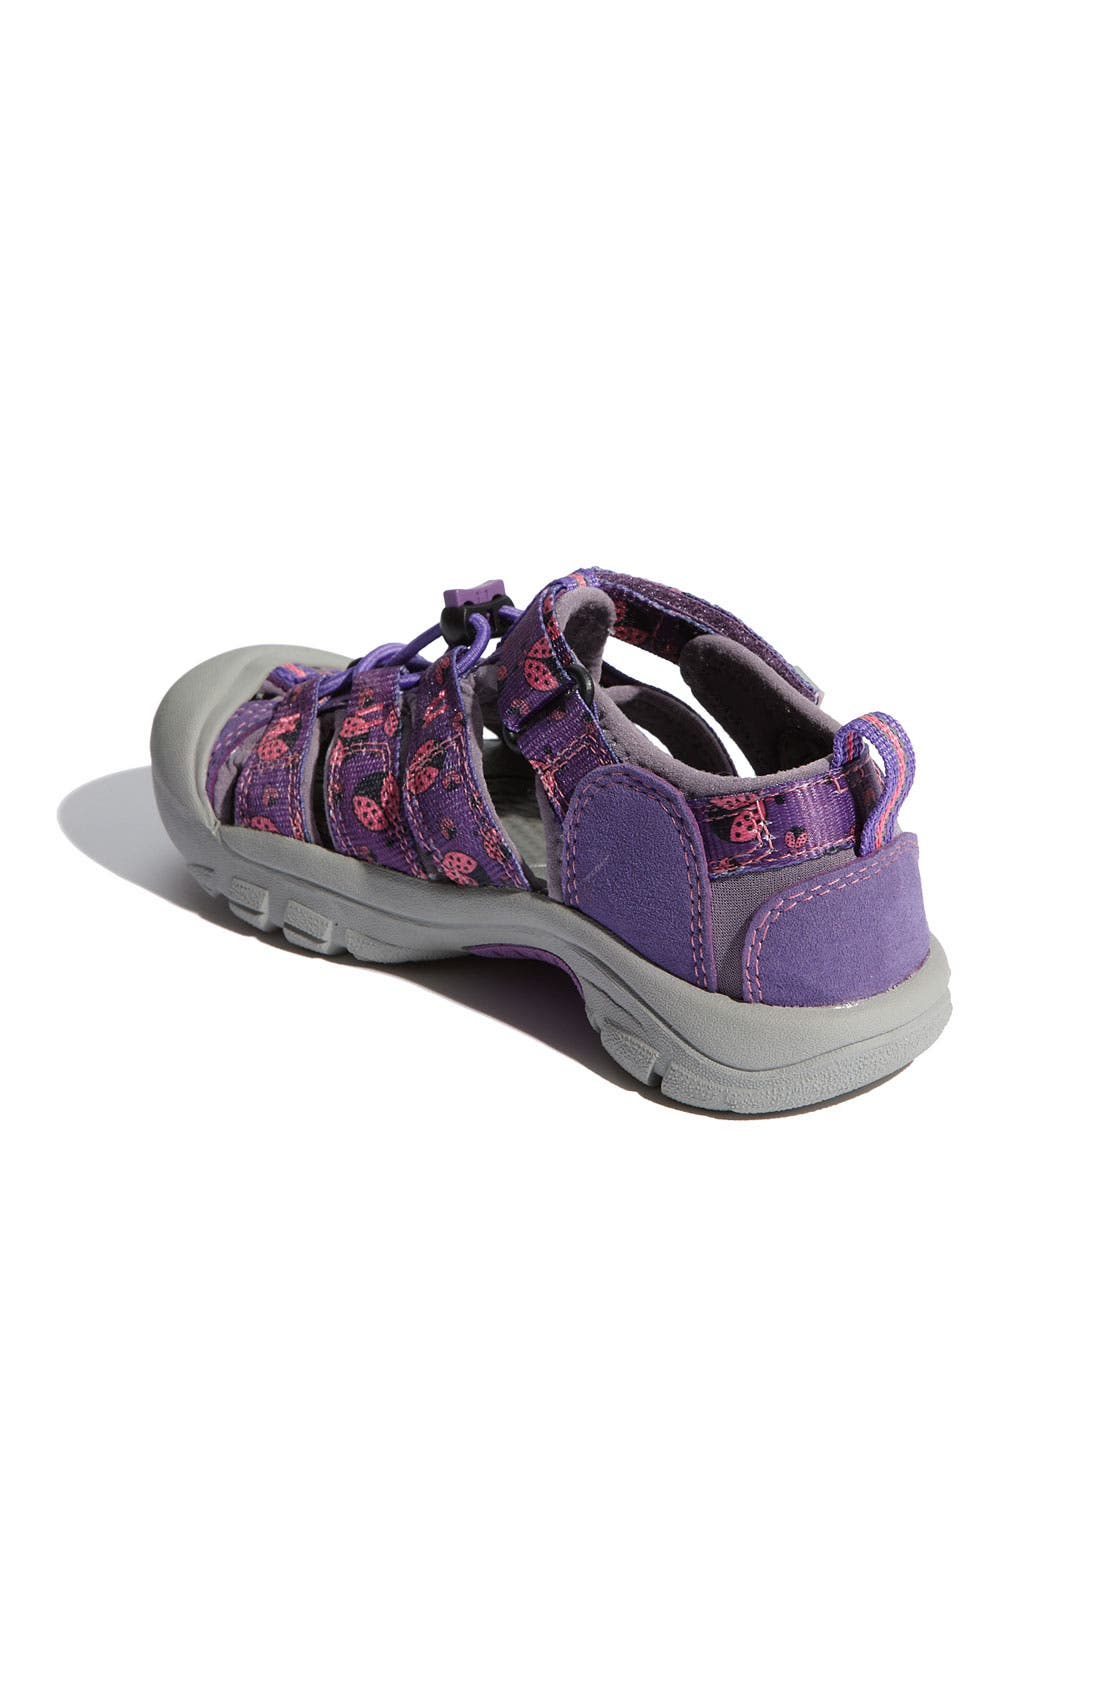 Alternate Image 2  - Keen 'Newport H2' Waterproof Sandal (Toddler, Little Kid & Big Kid)